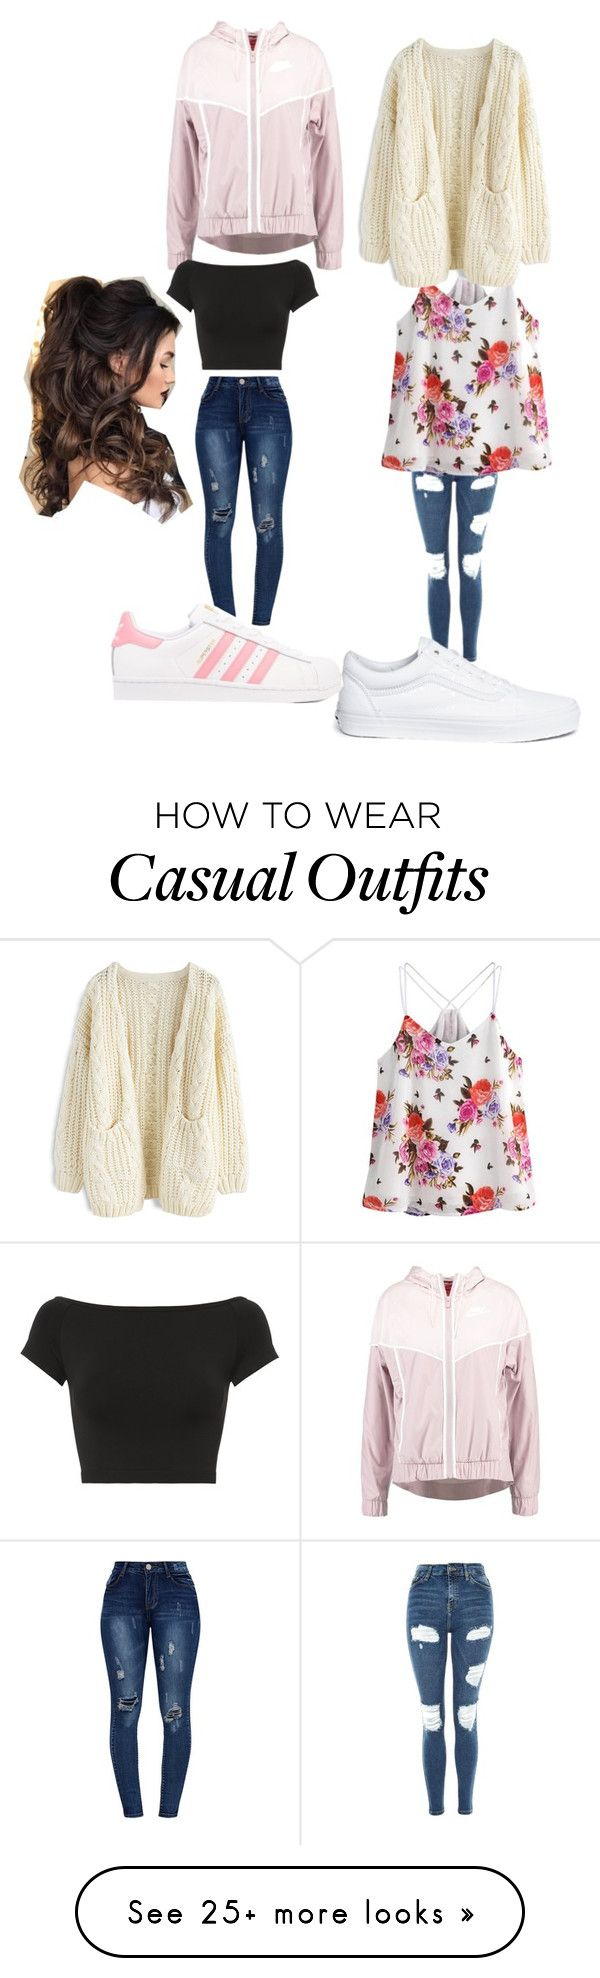 """""""Untitled #9762"""" by lover5sos on Polyvore featuring Topshop, Vans, NIKE, Helmut Lang and adidas Originals"""